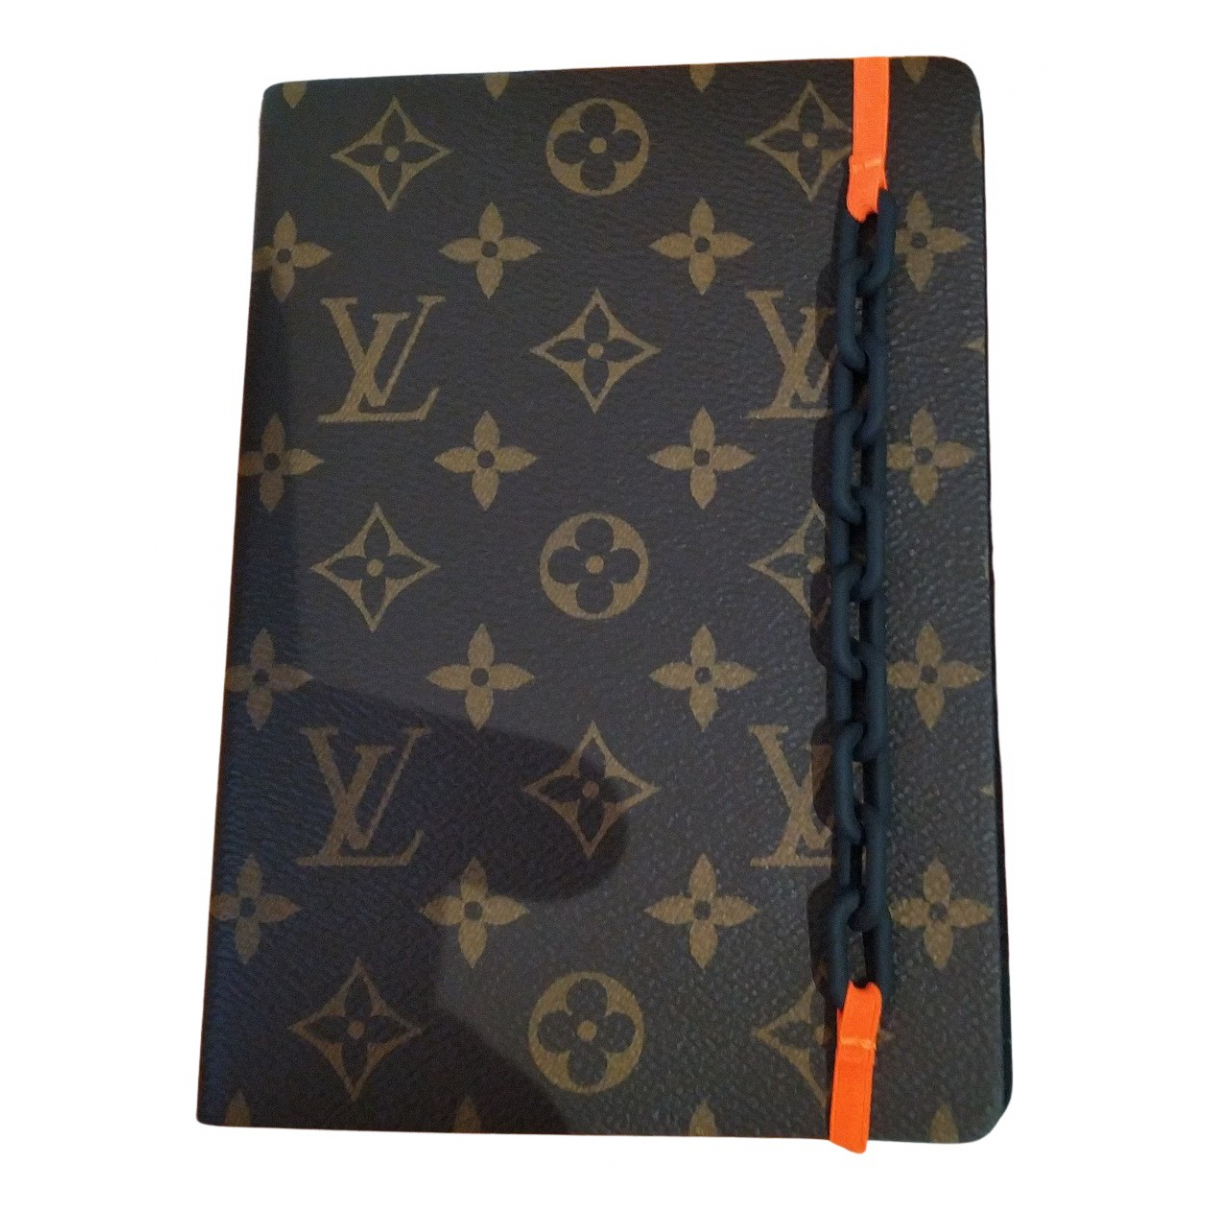 Louis Vuitton N Brown Cloth Home decor for Life & Living N